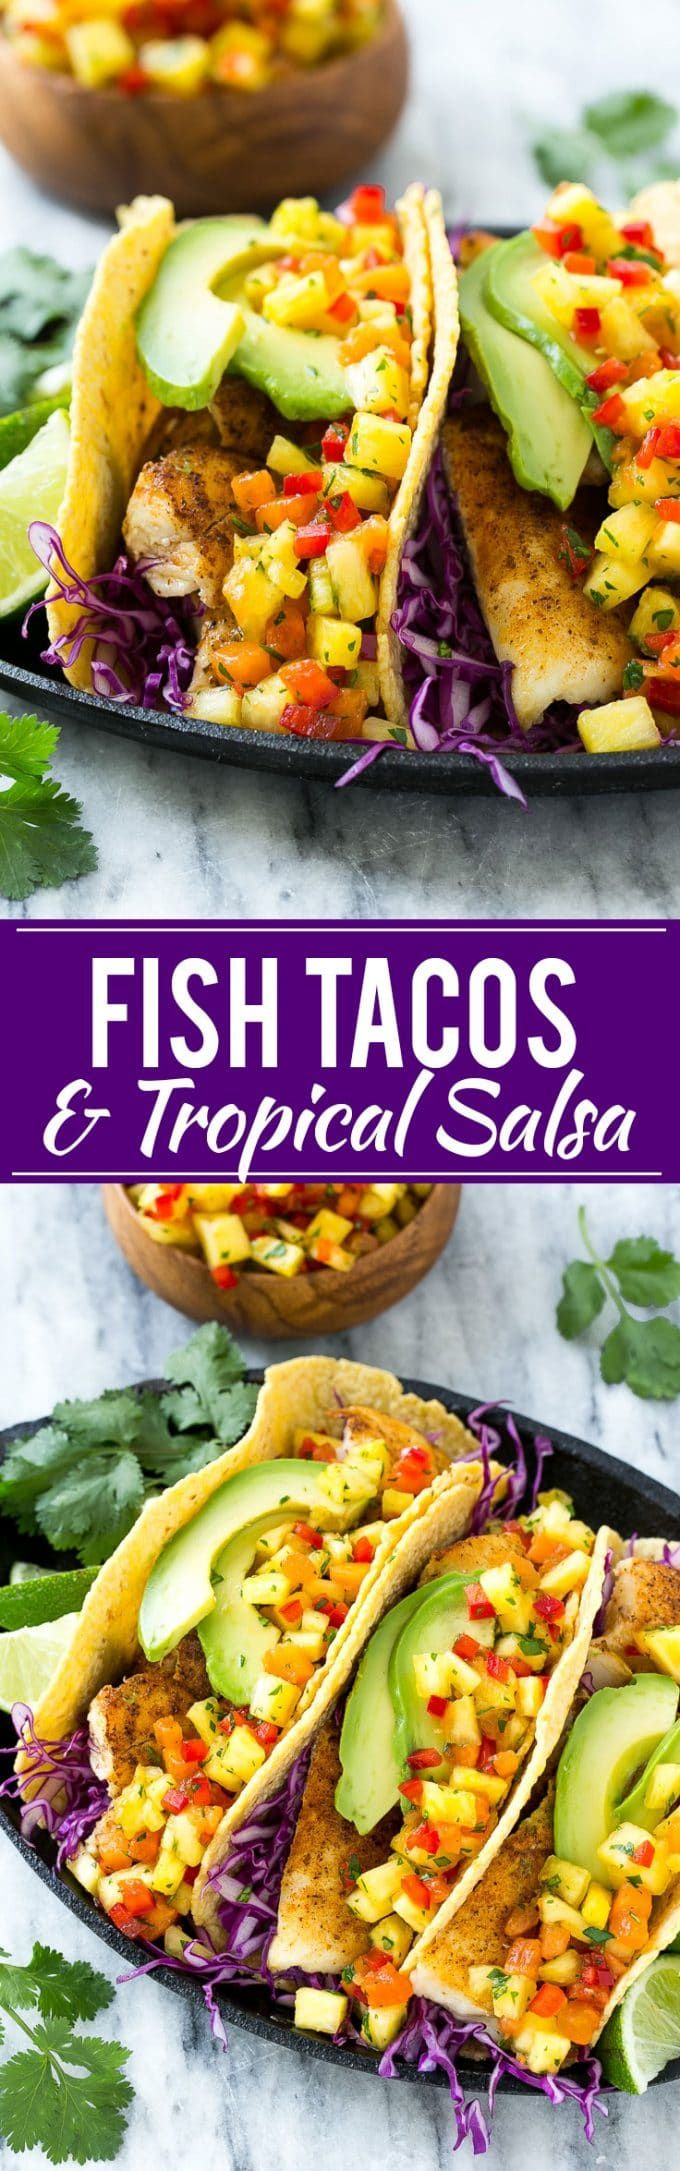 Tilapia Fish Tacos with Tropical Salsa Recipe | Tilapia Fish Taco Recipe | Easy Fish Tacos | Tropical Fish Tacos | Grilled Fish Tacos | Best Fish Tacos | Healthy Tilapia Recipe | Easy Fish Dinner